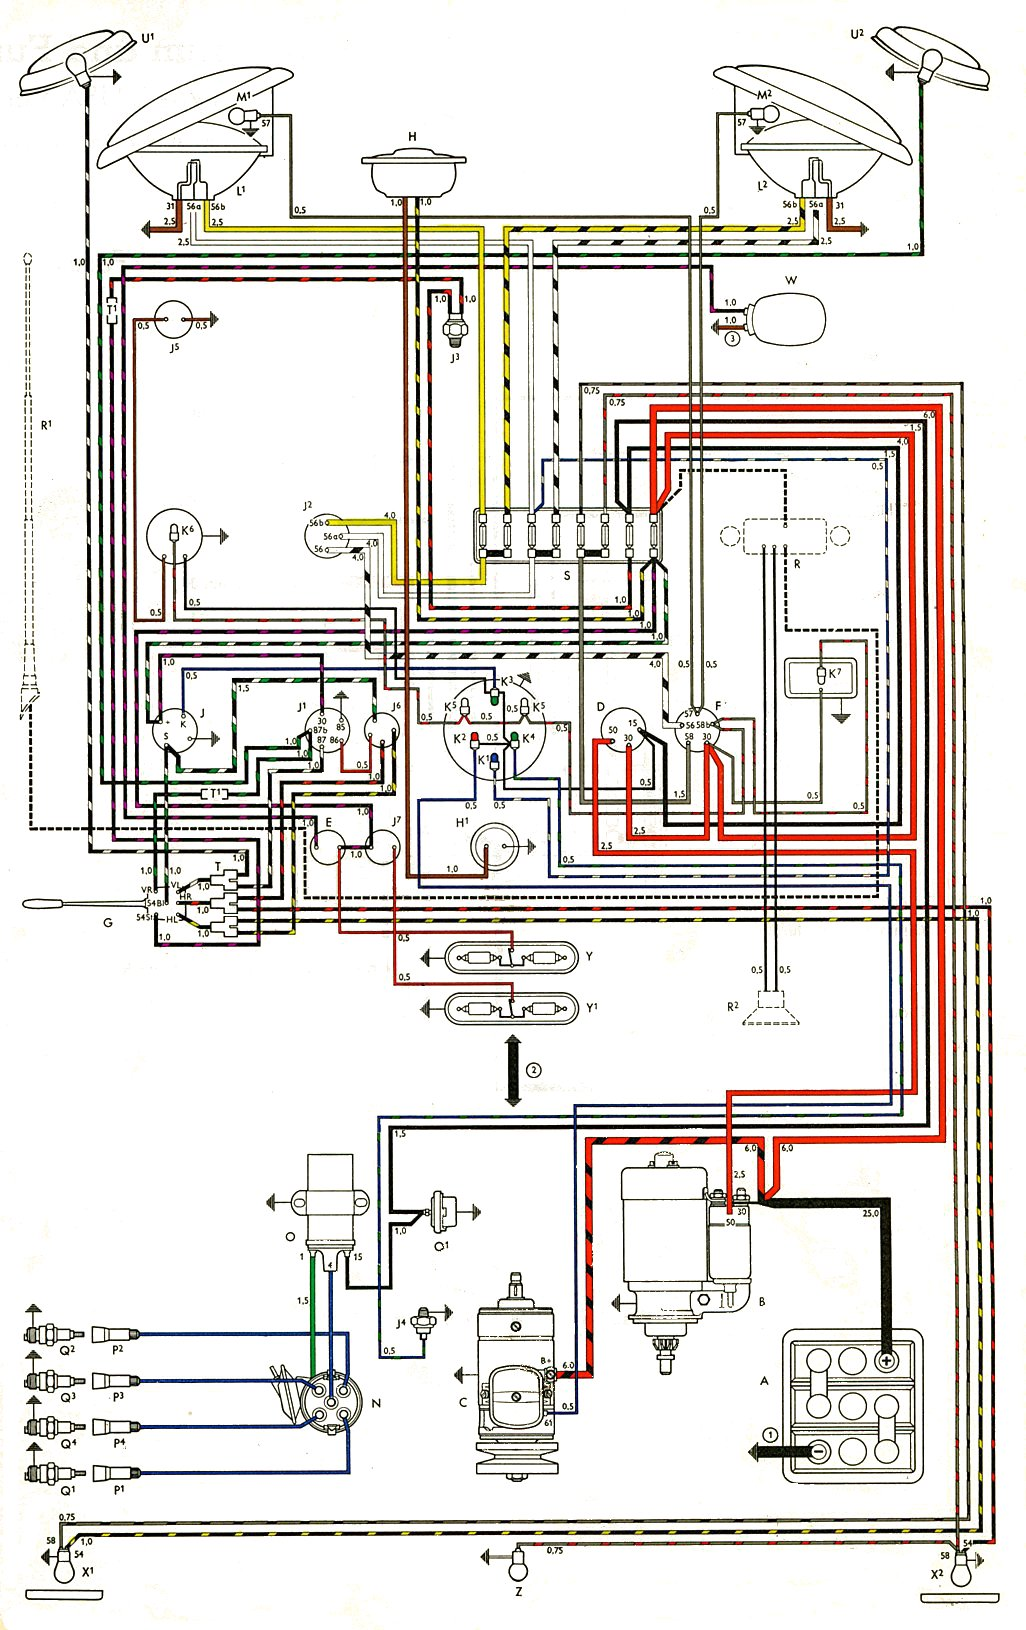 bus_63_USA thesamba com type 2 wiring diagrams 1963 vw wiring diagram at alyssarenee.co